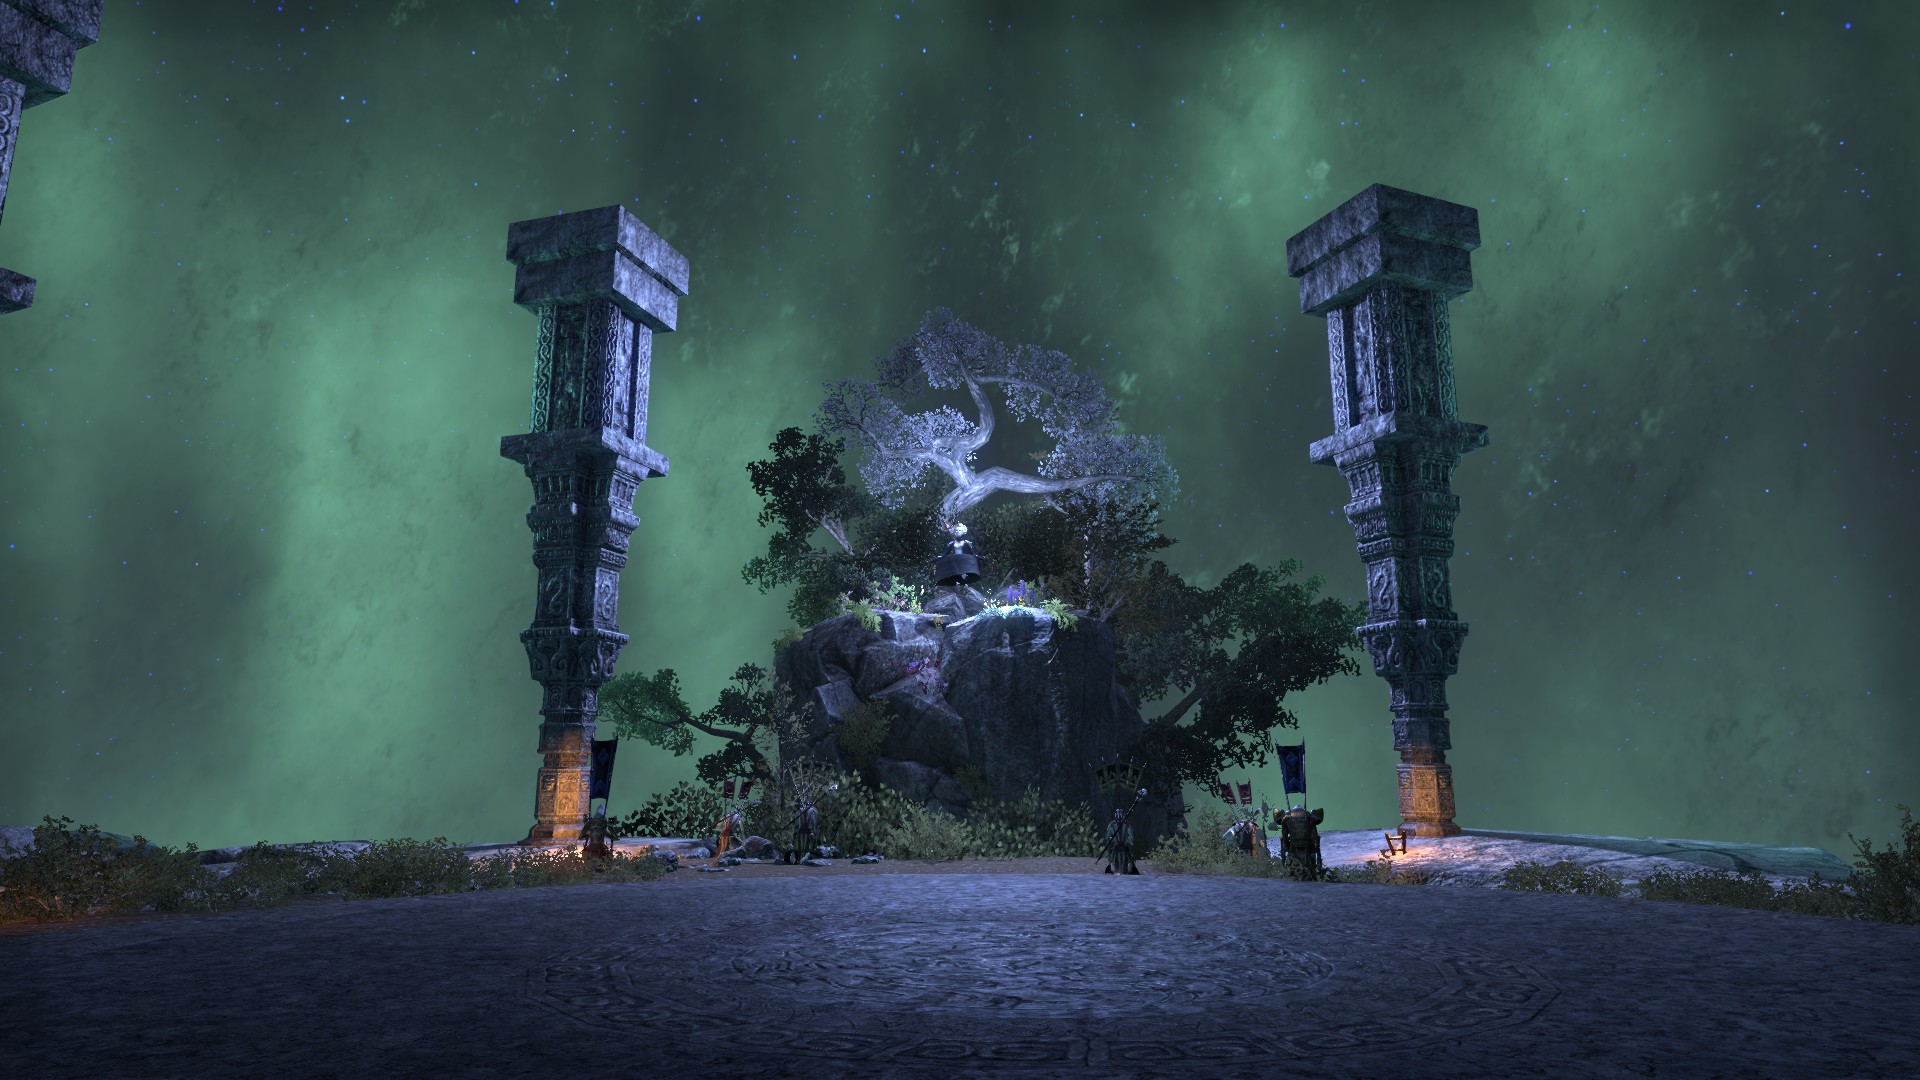 The Mage's Tower